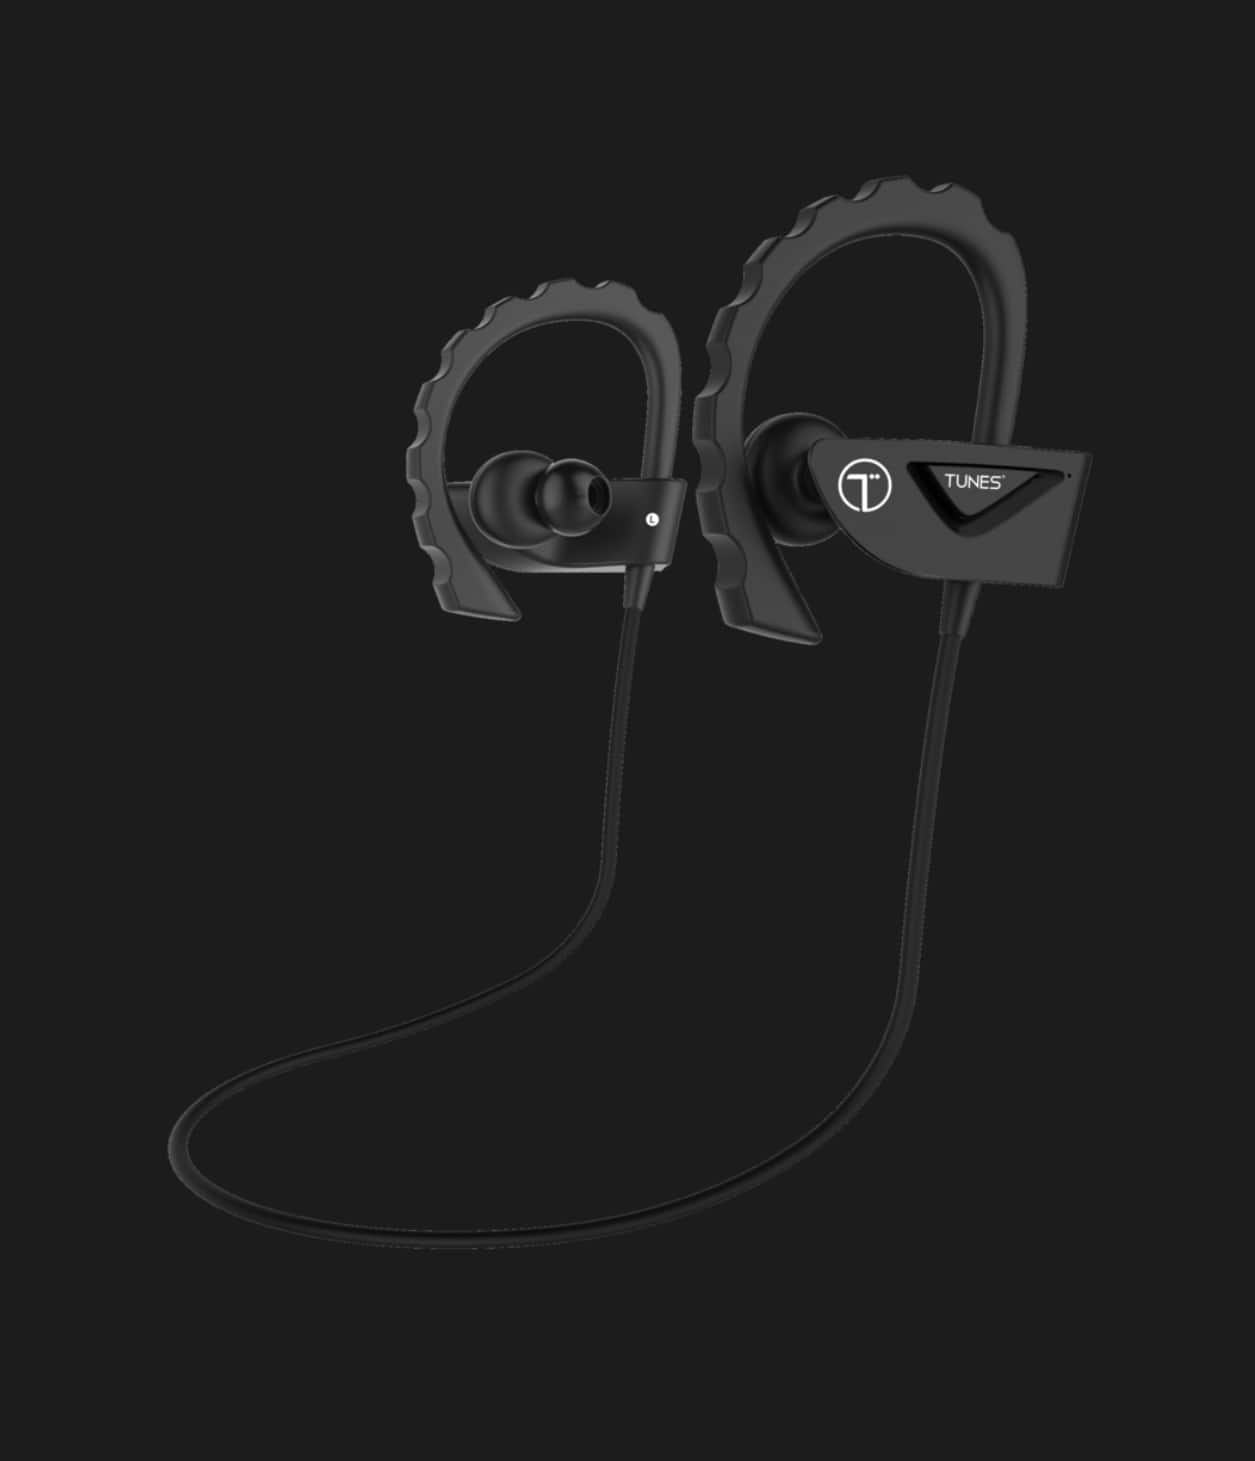 TUNES Premium HD Wireless Earphones $19.99